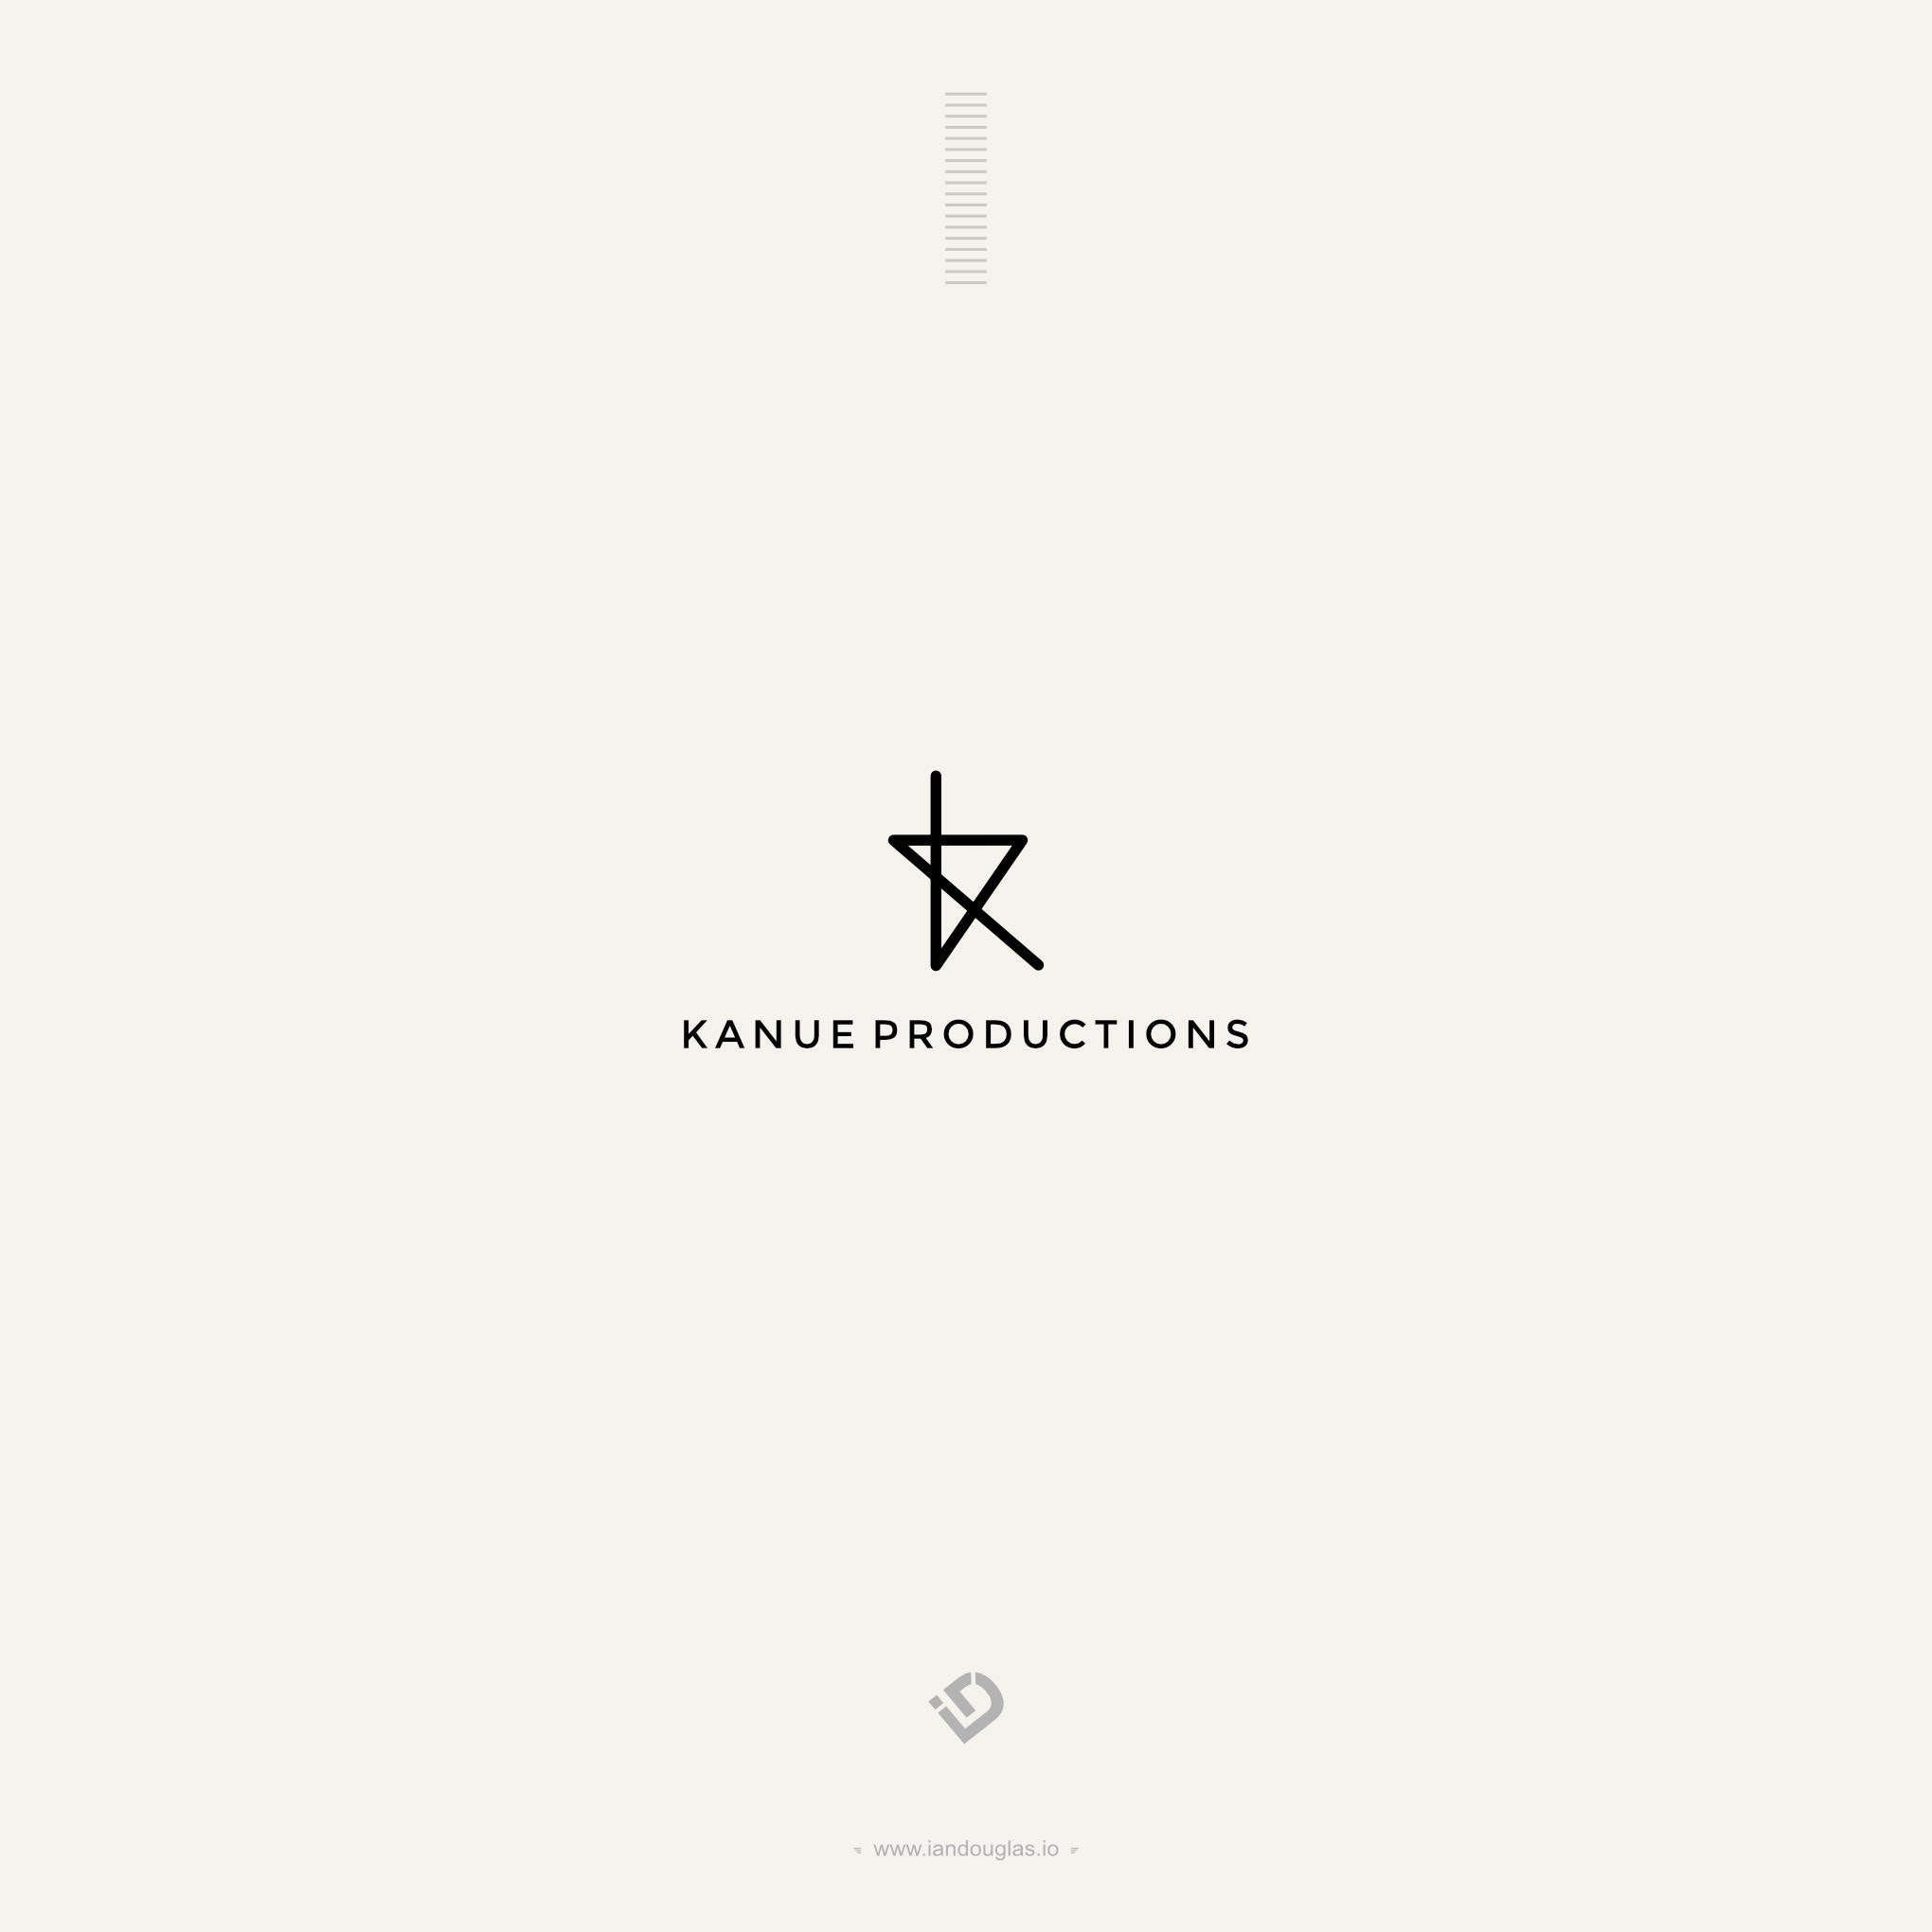 Kanue Productions logo